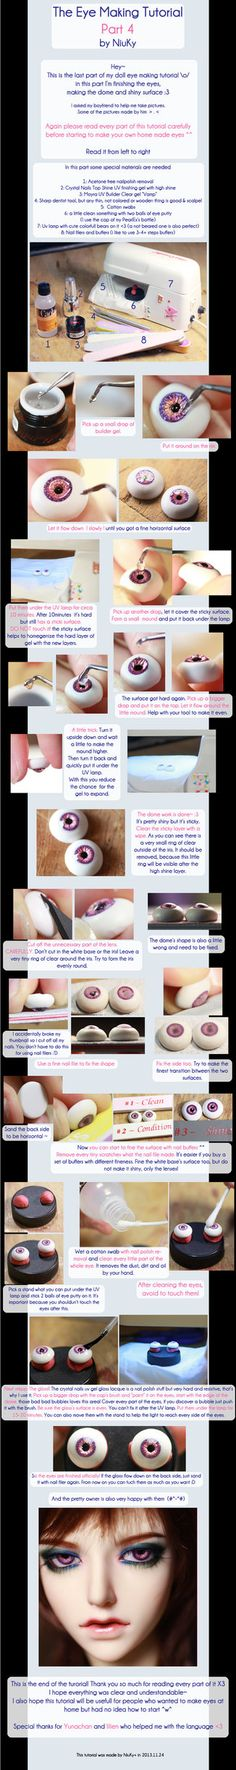 doll eye tutorial